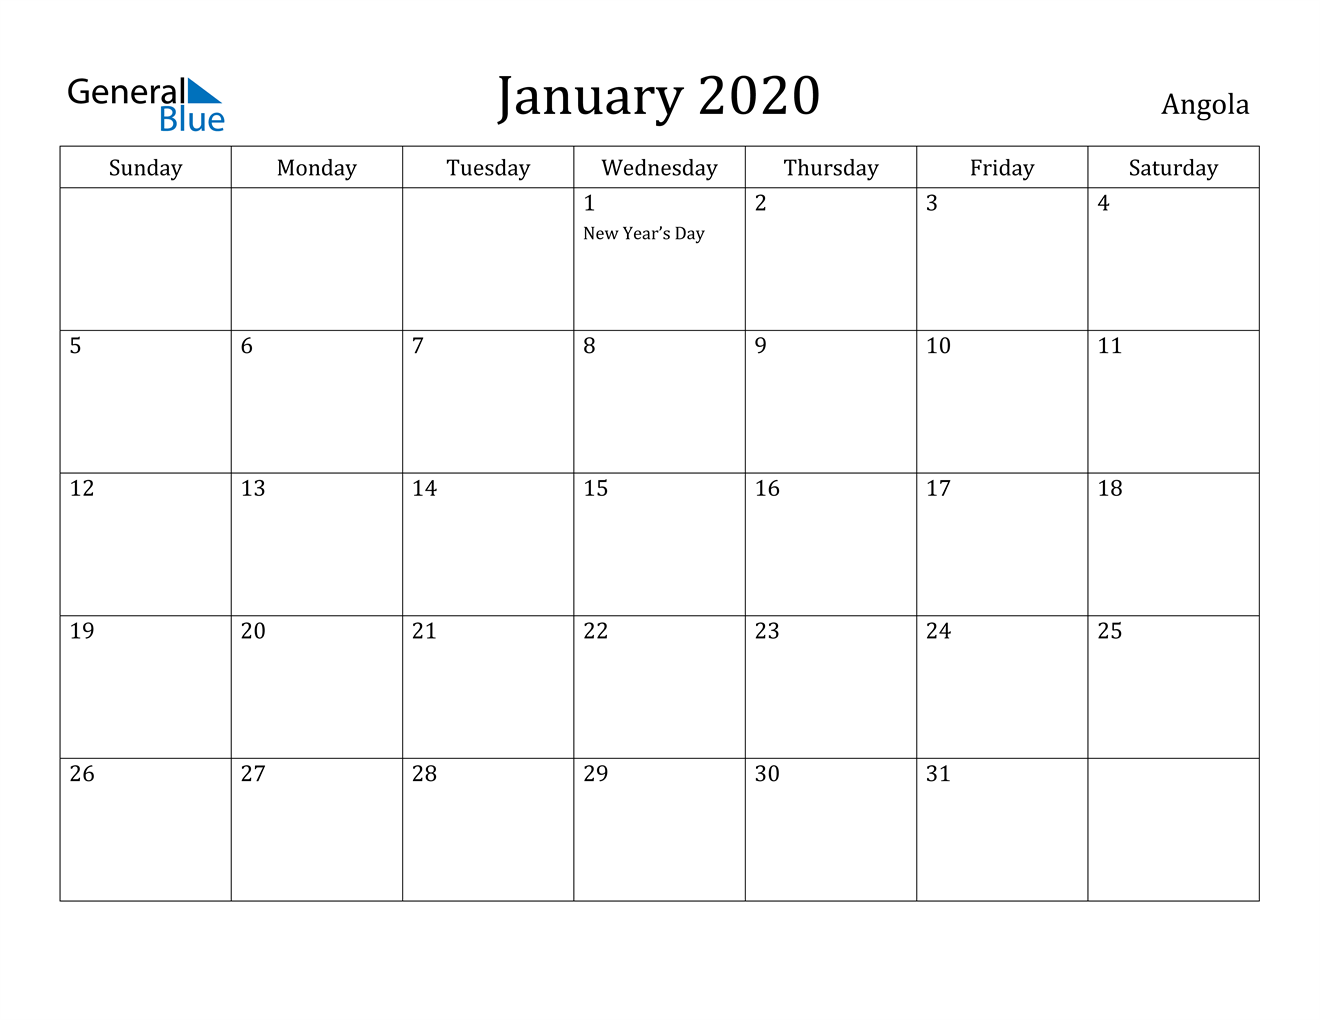 Image of January 2020 Angola Calendar with Holidays Calendar